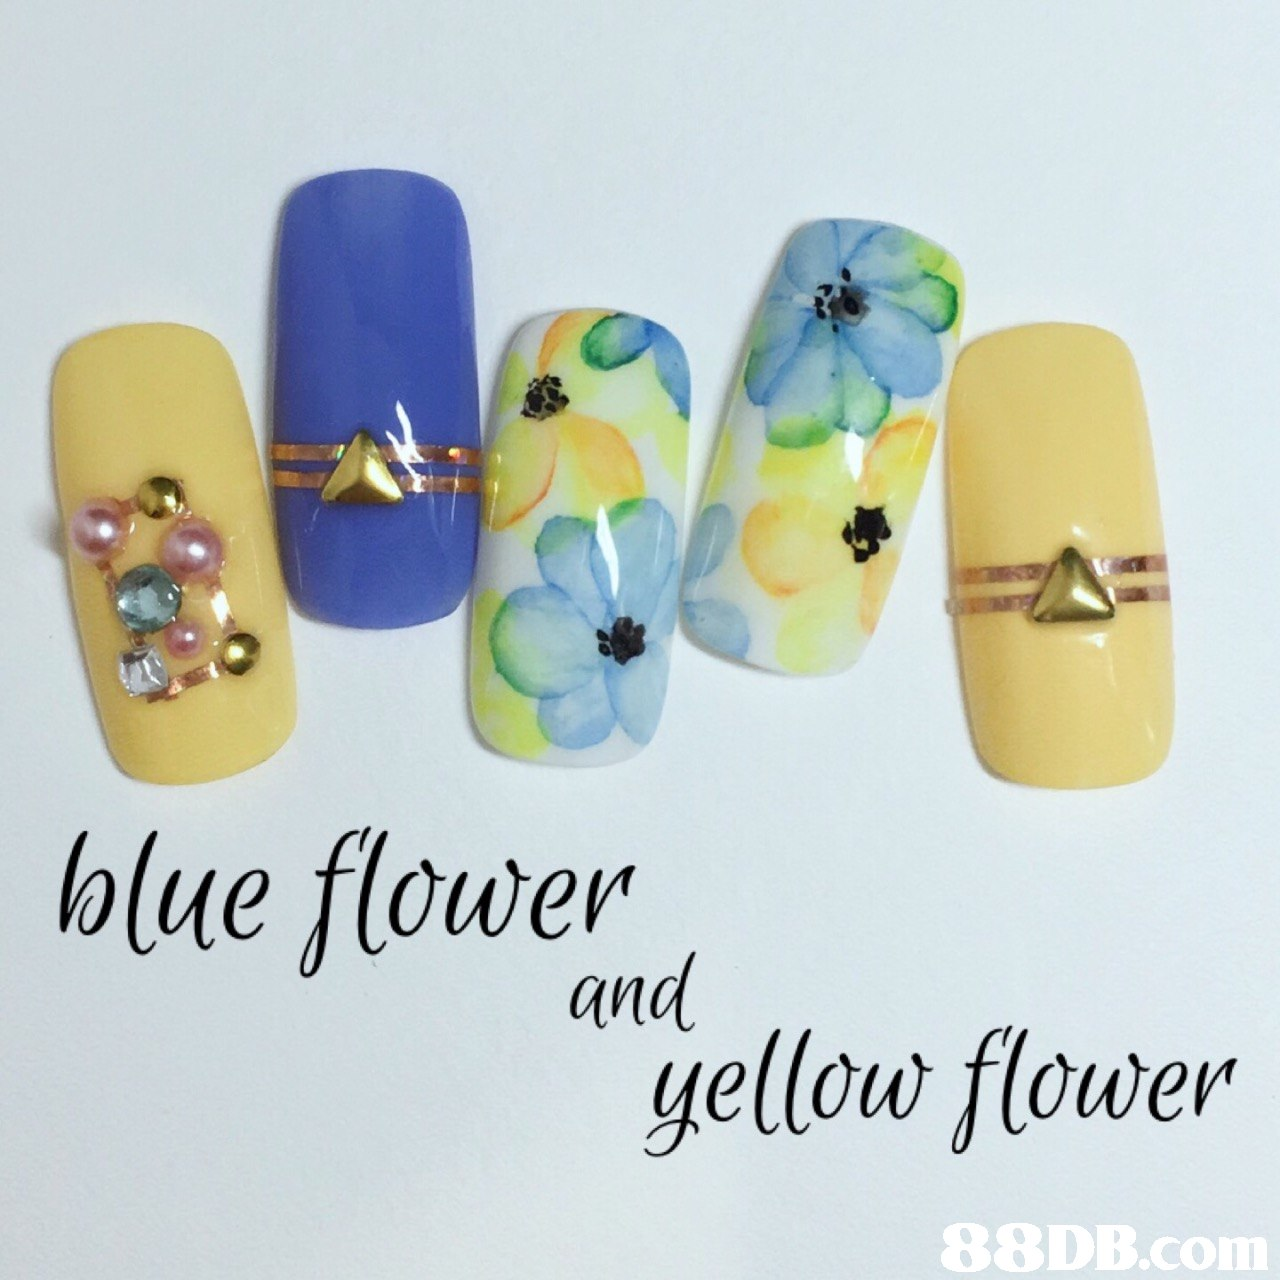 blue flower and gellow flower   Nail,Yellow,Finger,Nail care,Artificial nails